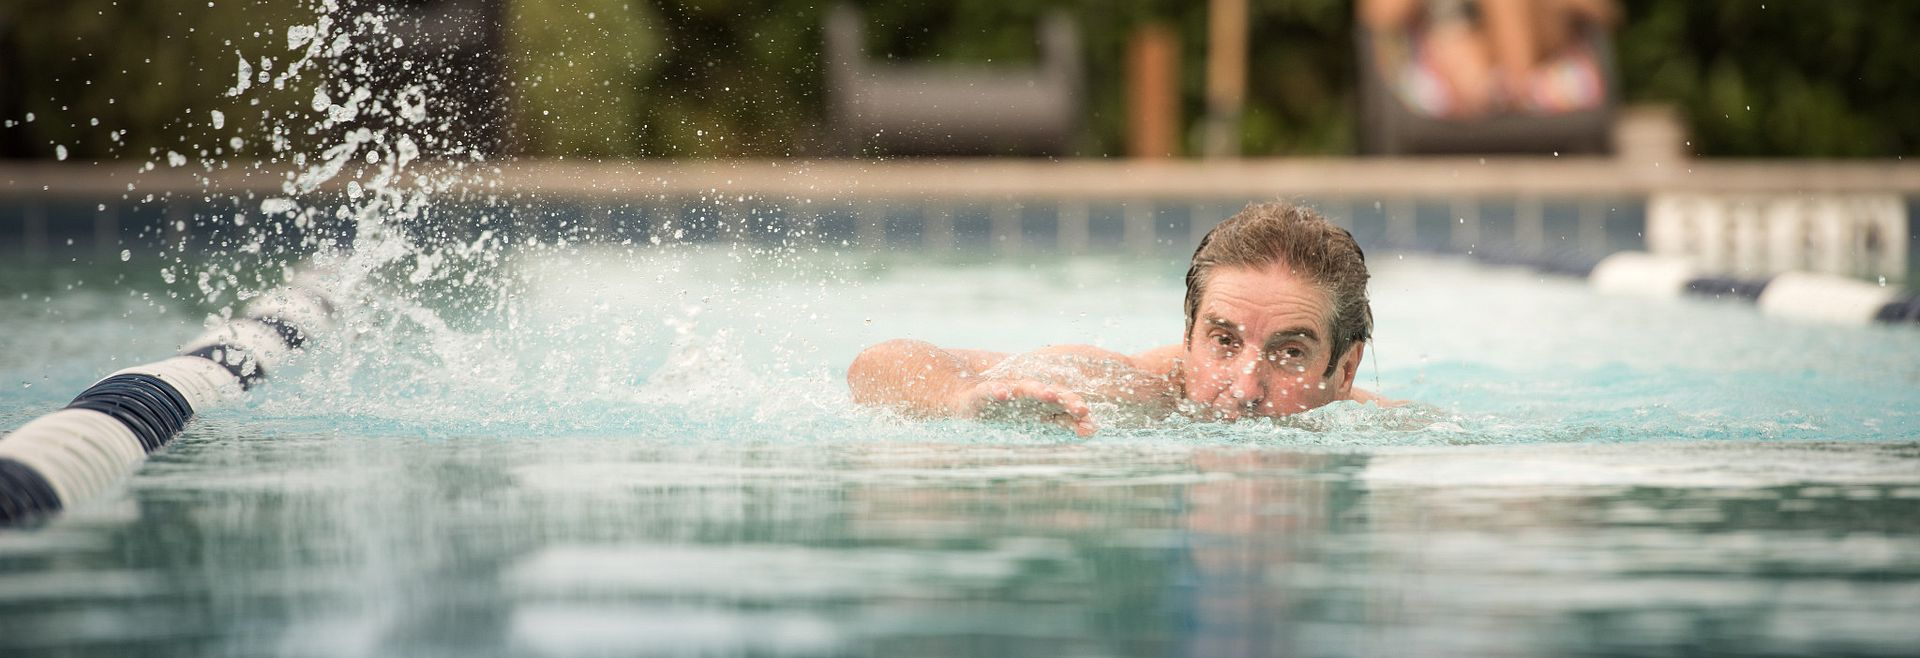 Man swimming in outdoor pool